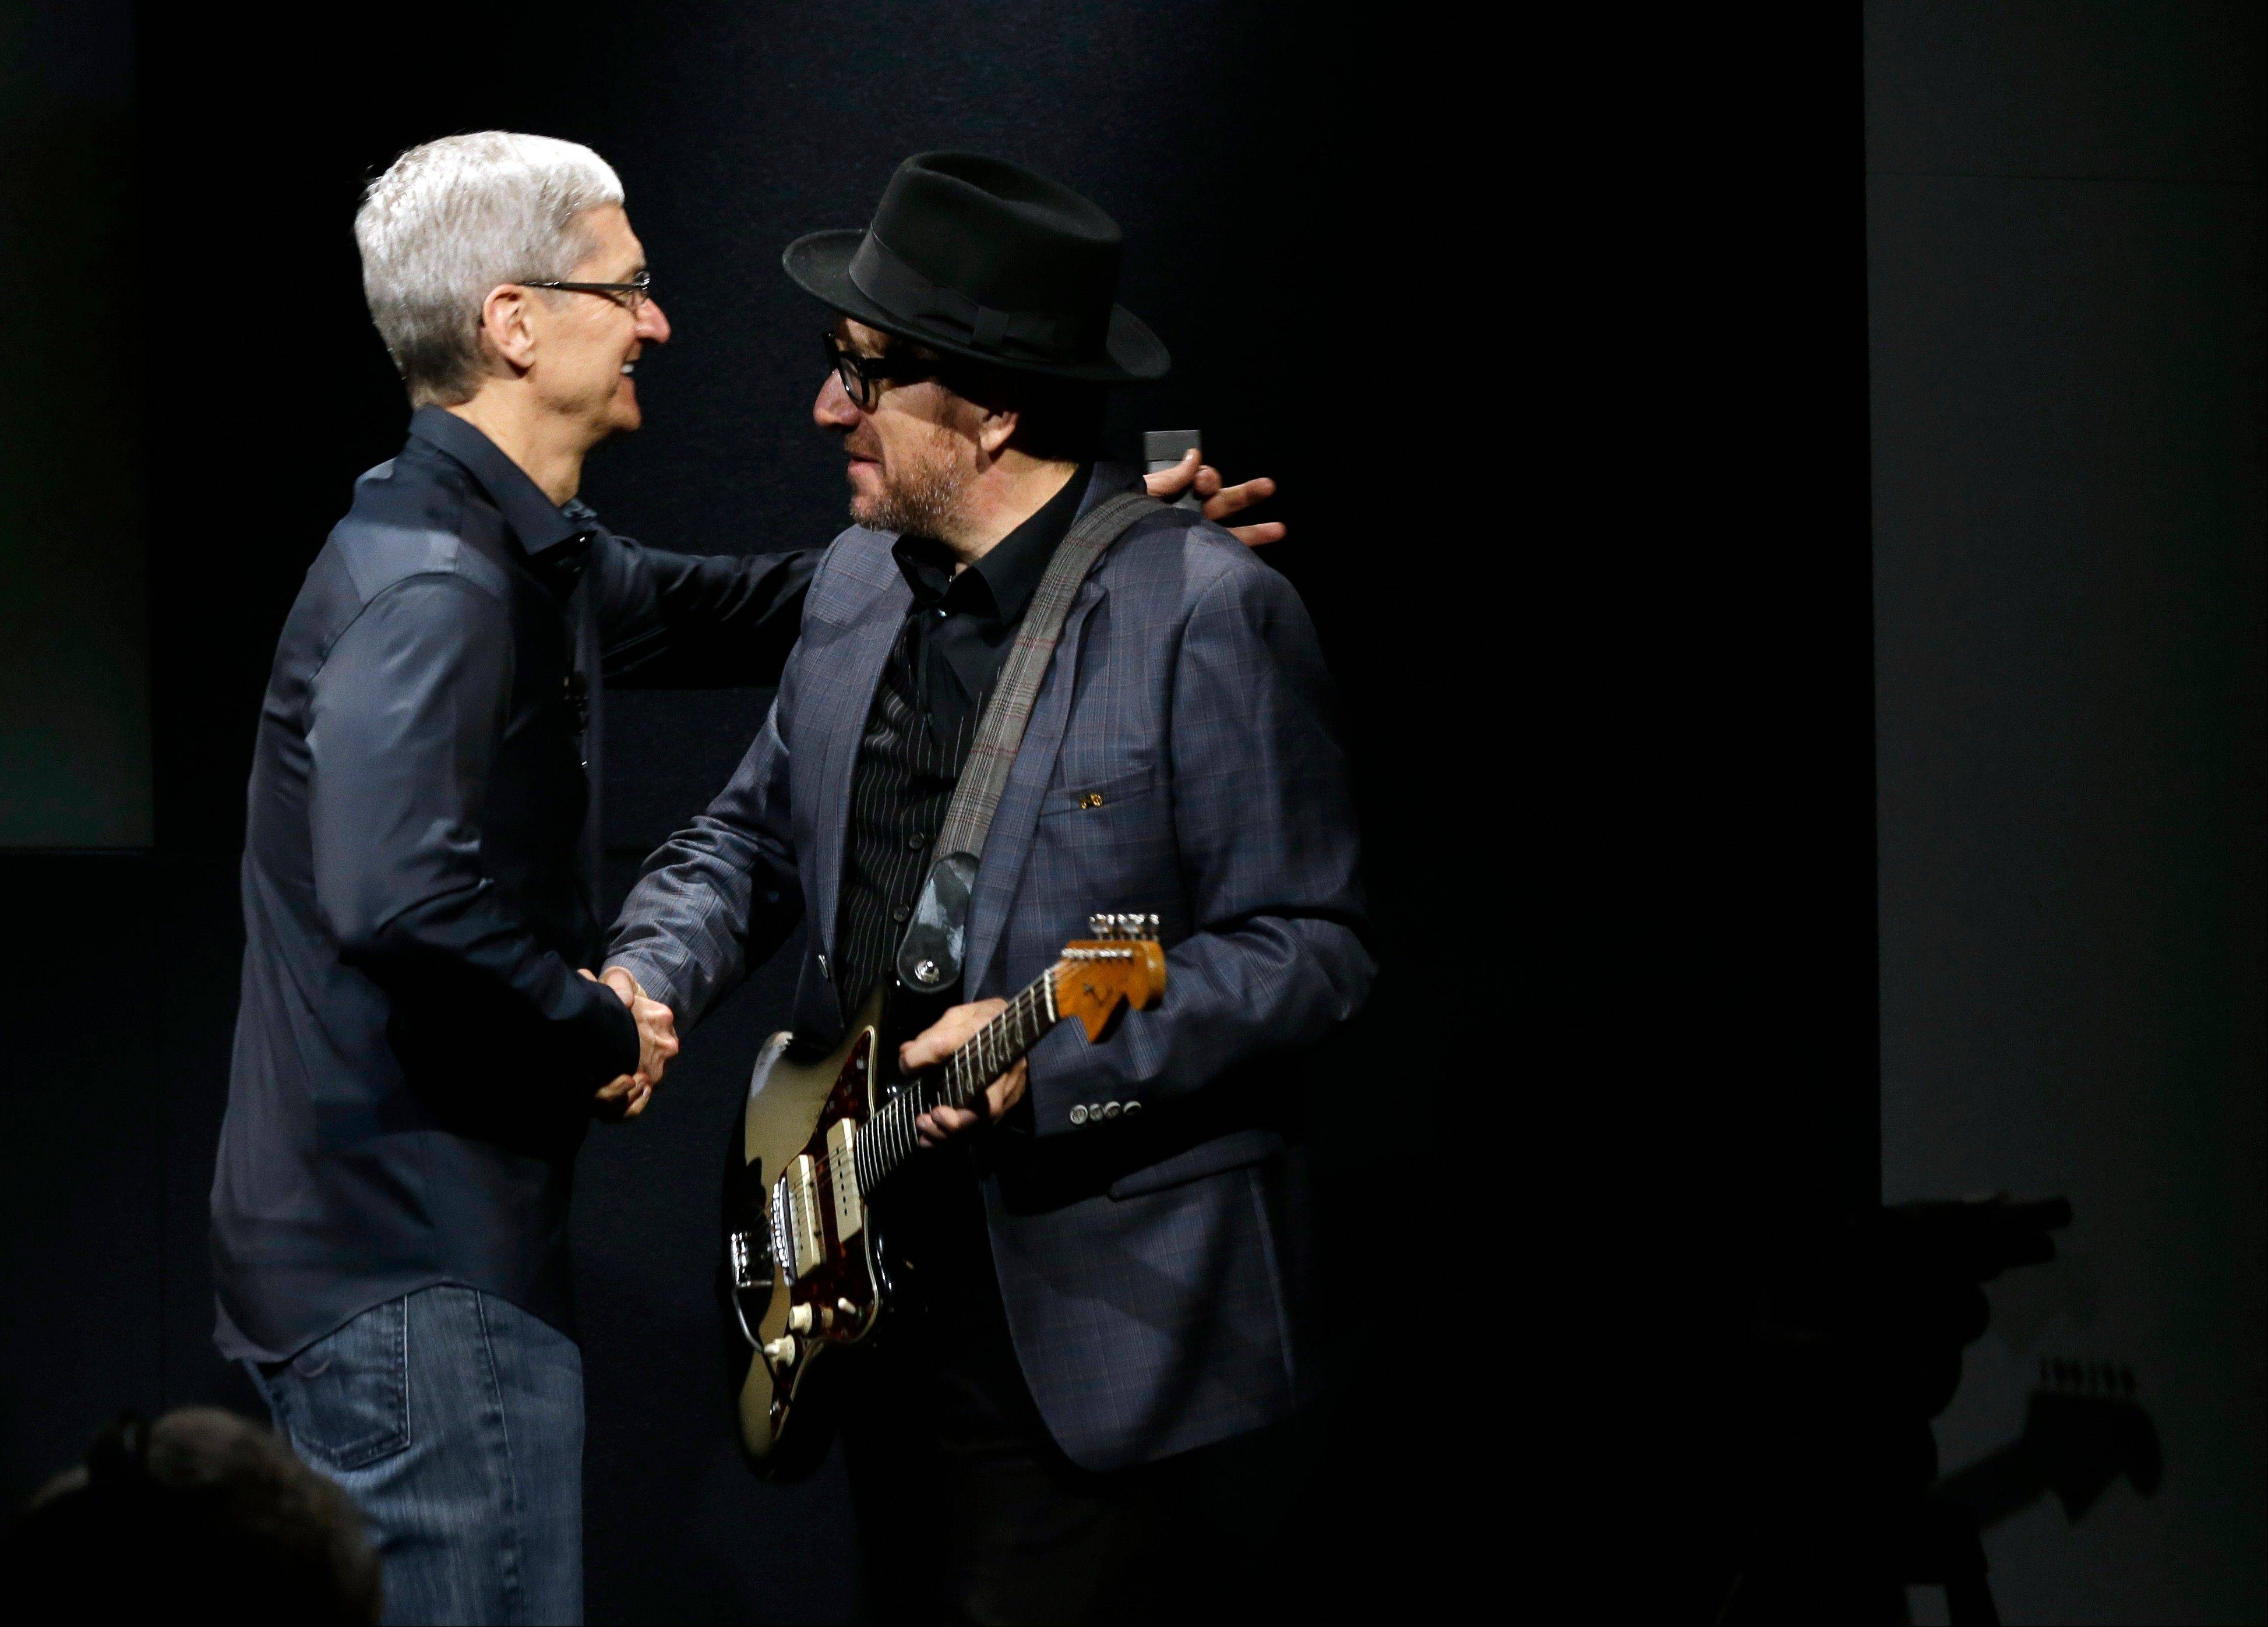 Tim Cook, CEO of Apple, hugs entertainer Elvis Costello, after the new product release in Cupertino, Calif., Tuesday, Sept. 10, 2013. Apple�s latest iPhones will come in a bevy of colors and two distinct designs, one made of plastic and the other that aims to be �the gold standard of smartphones and reads your fingerprint.